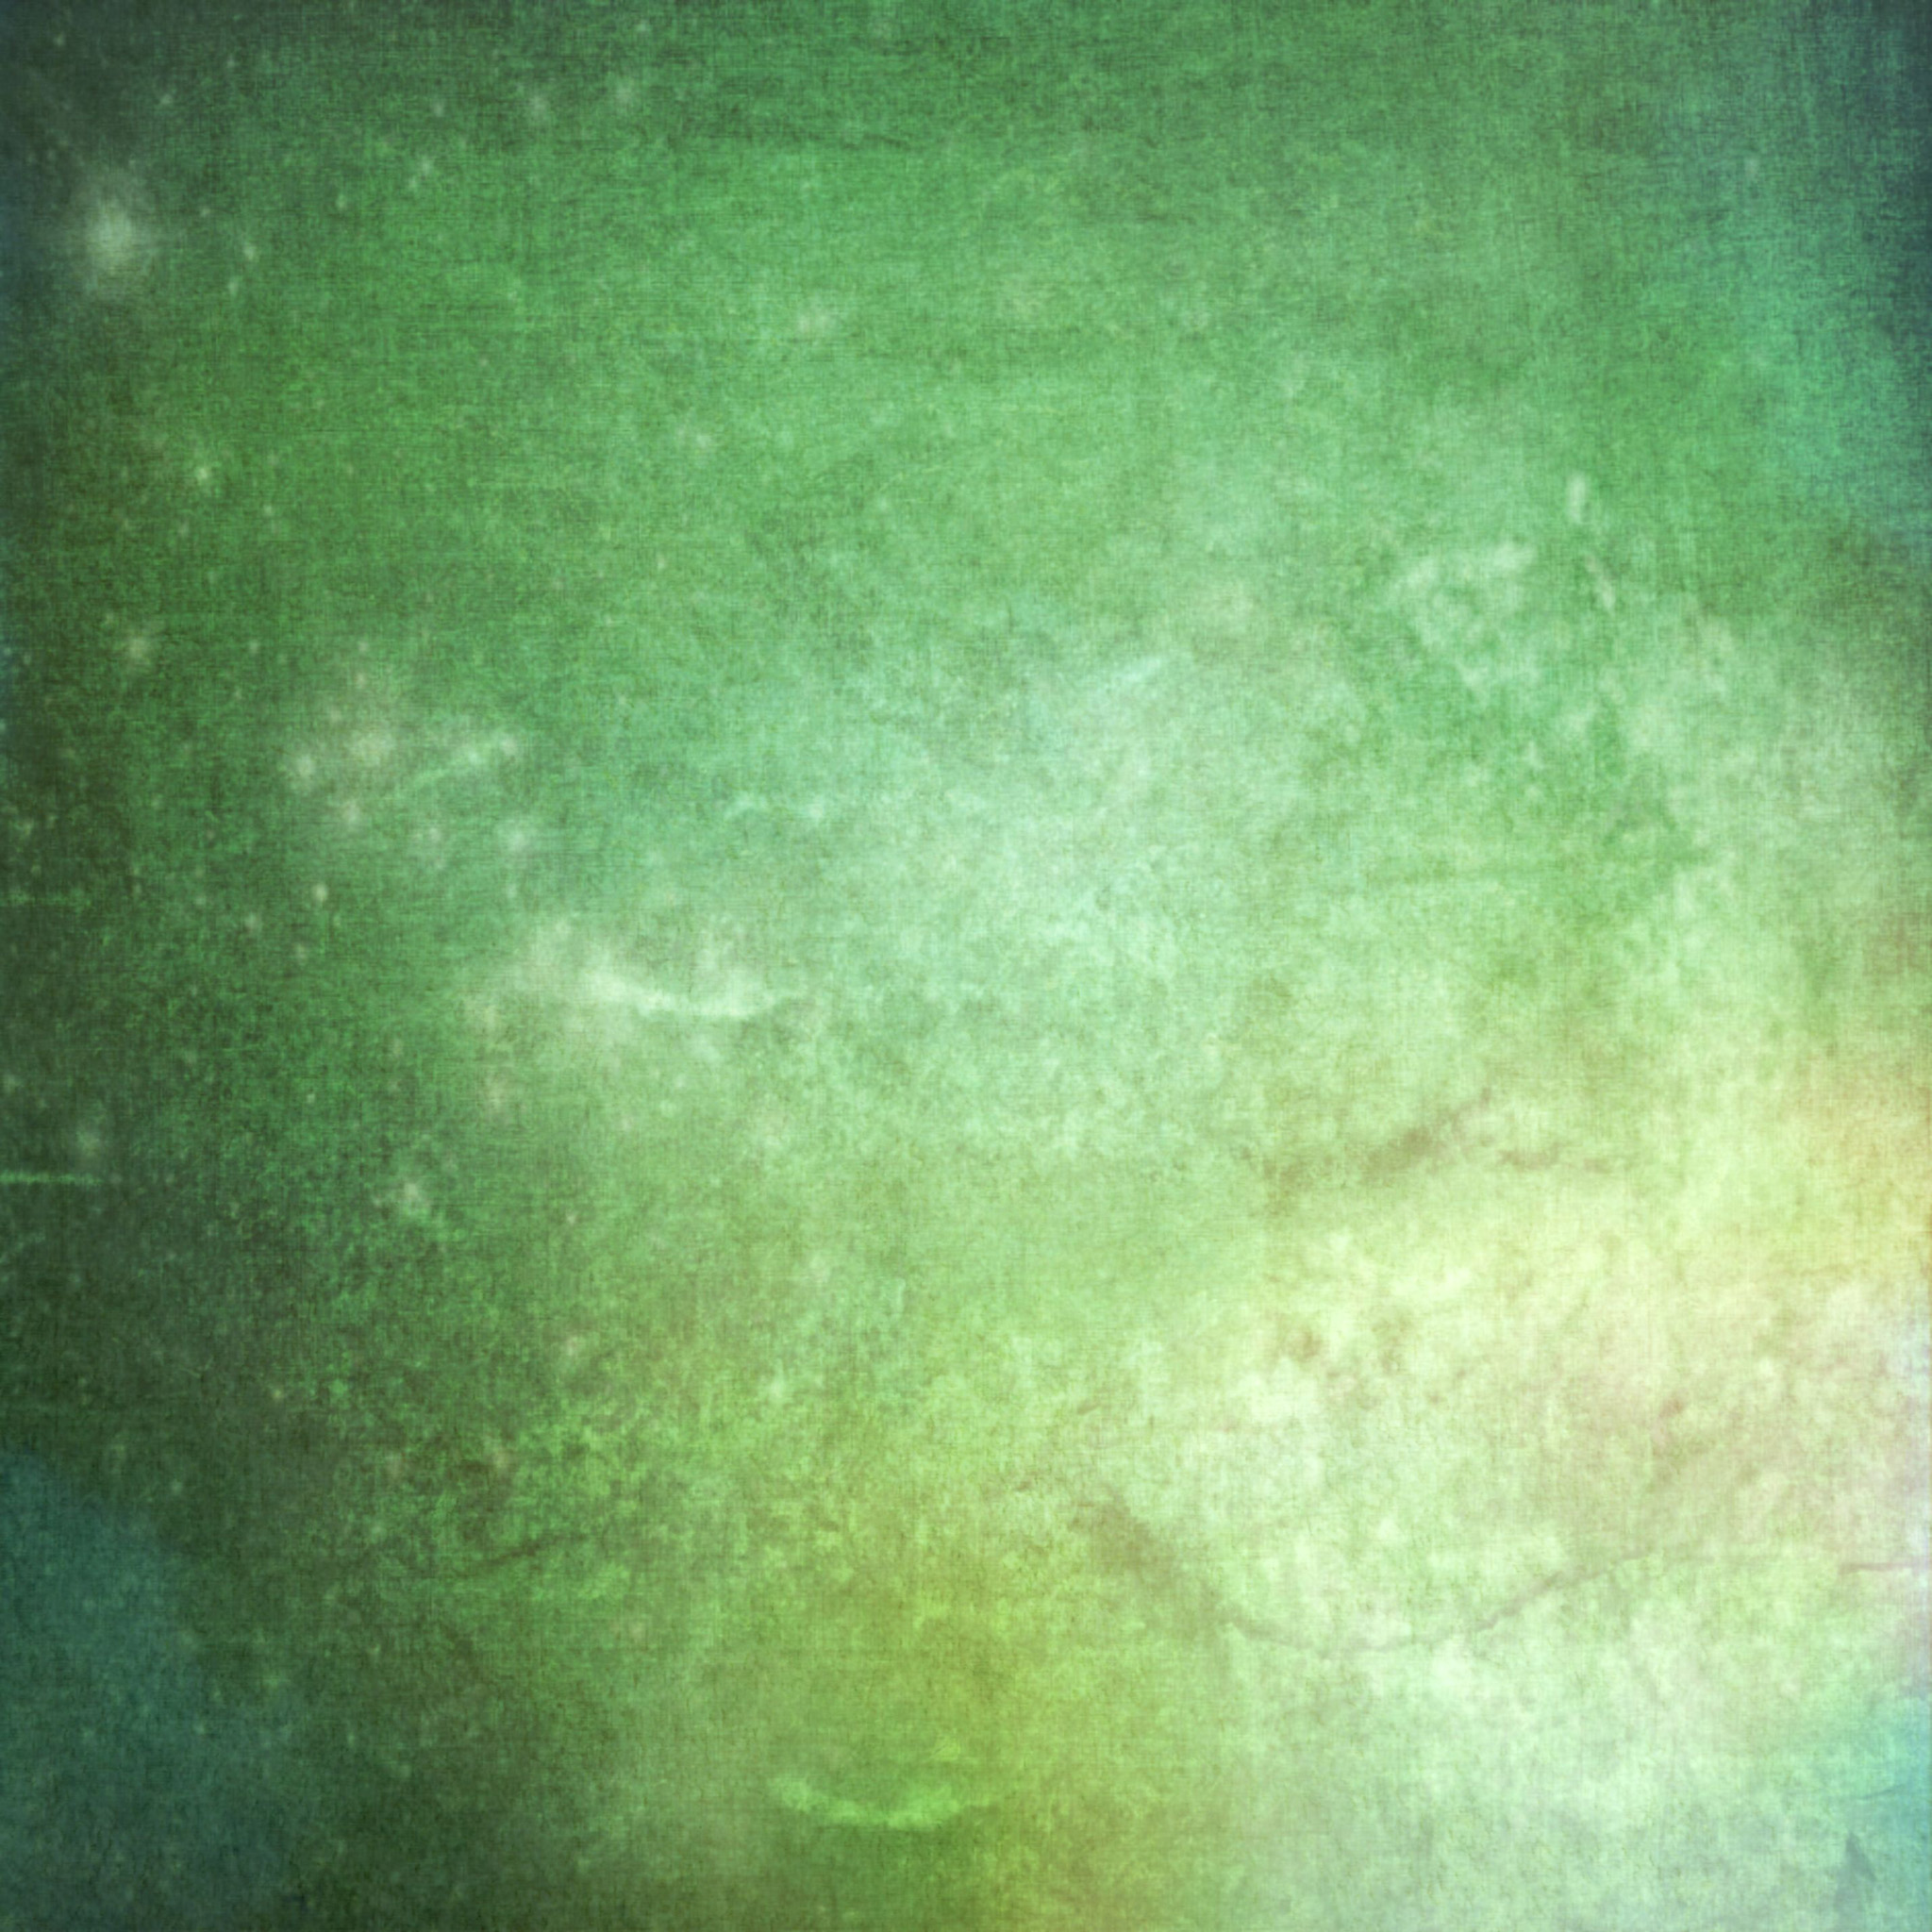 elne - gritty green texture ipad wallpaper